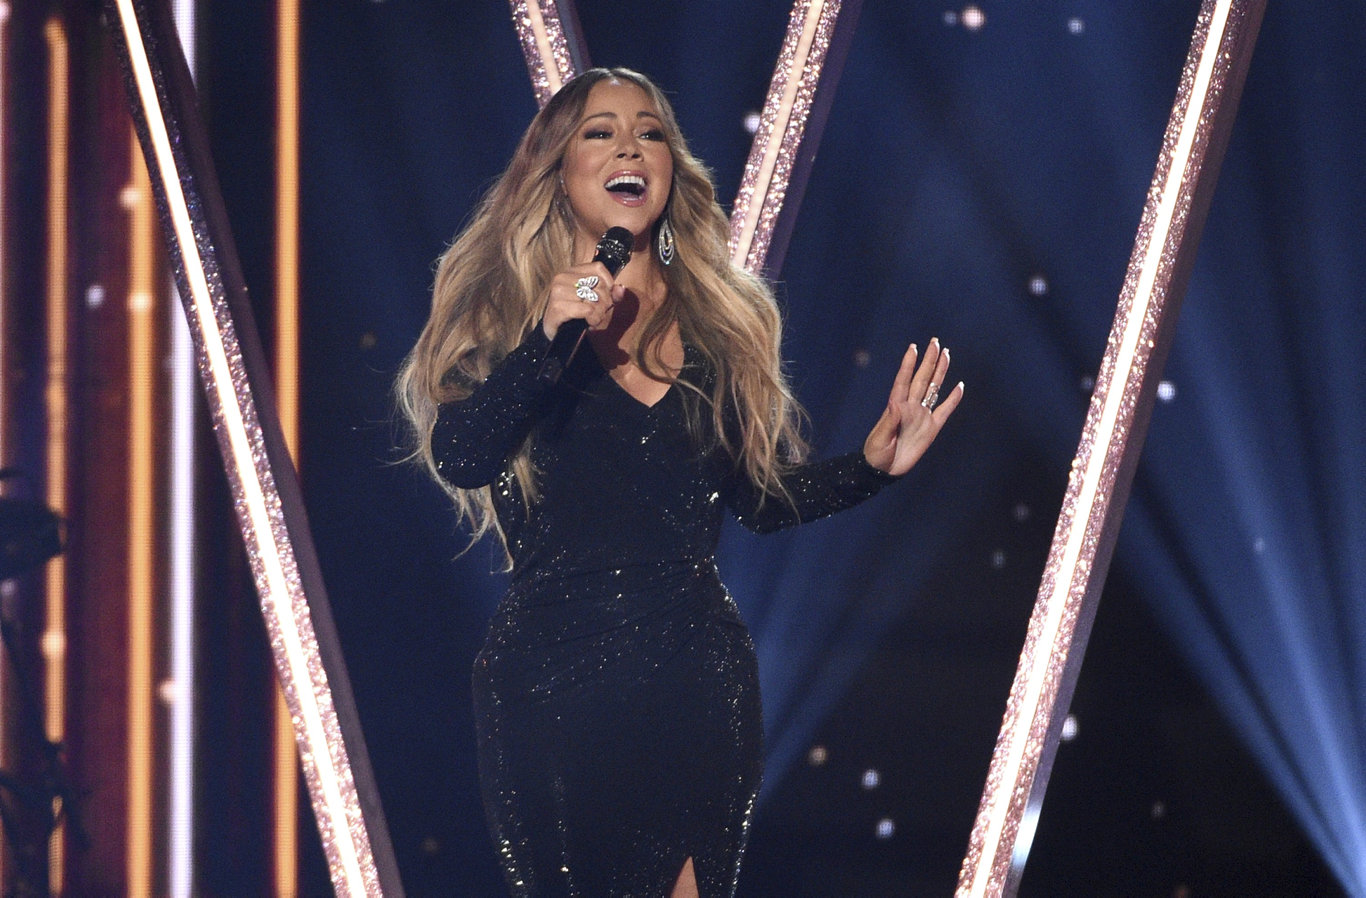 Mariah Carey performs a medley at the Billboard Music Awards in Las Vegas.